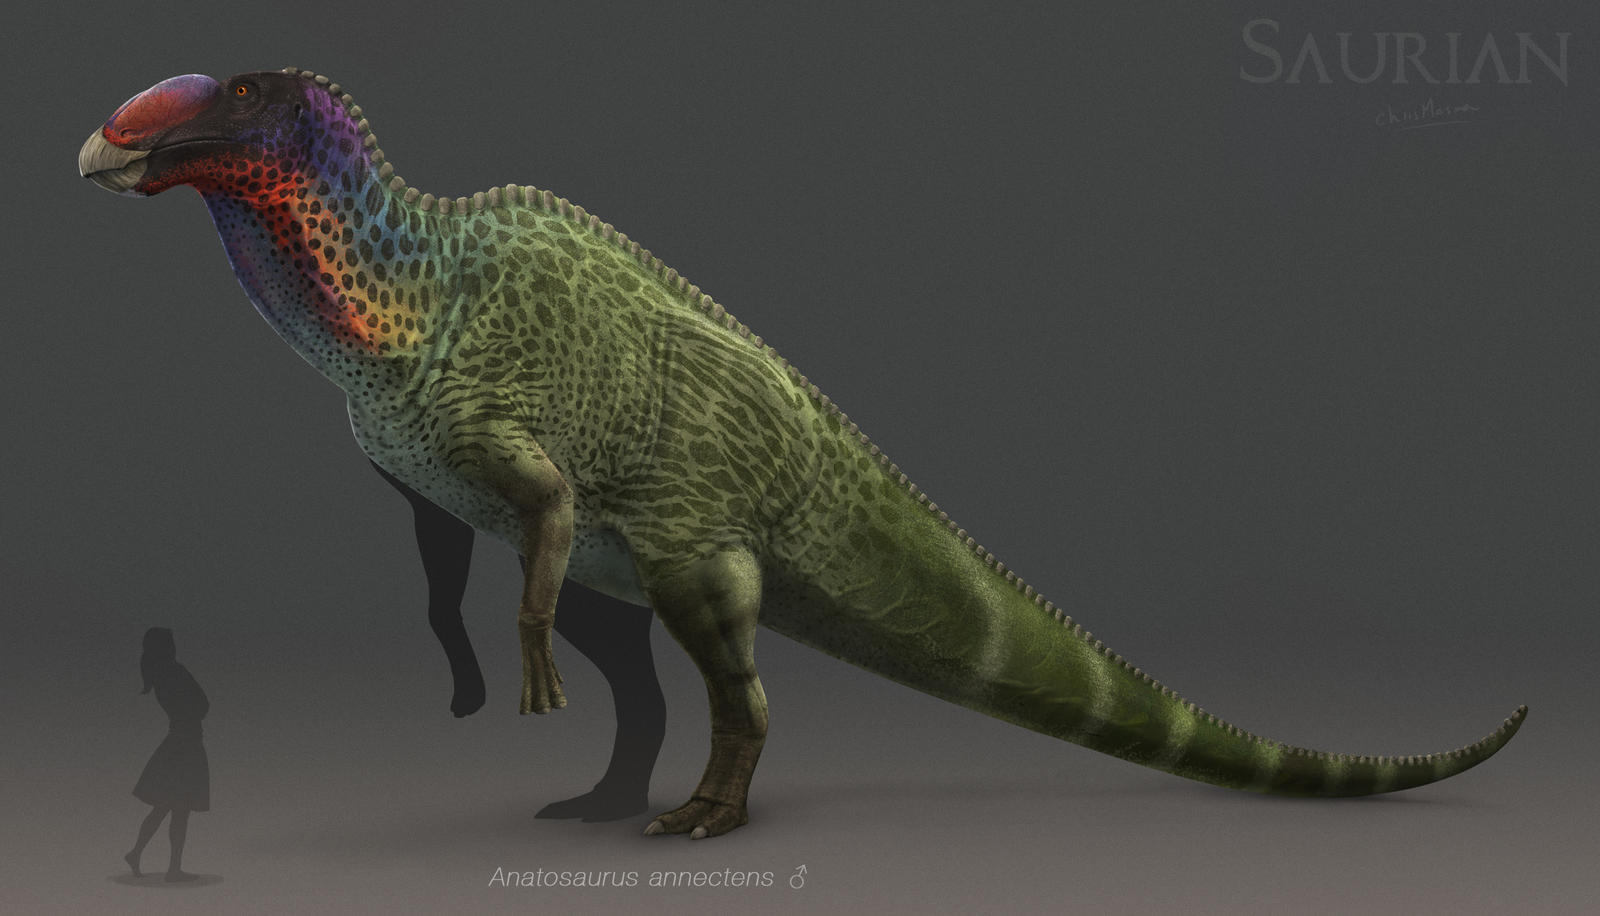 Anatosaurus by chrismasna on deviantart for Painting games com